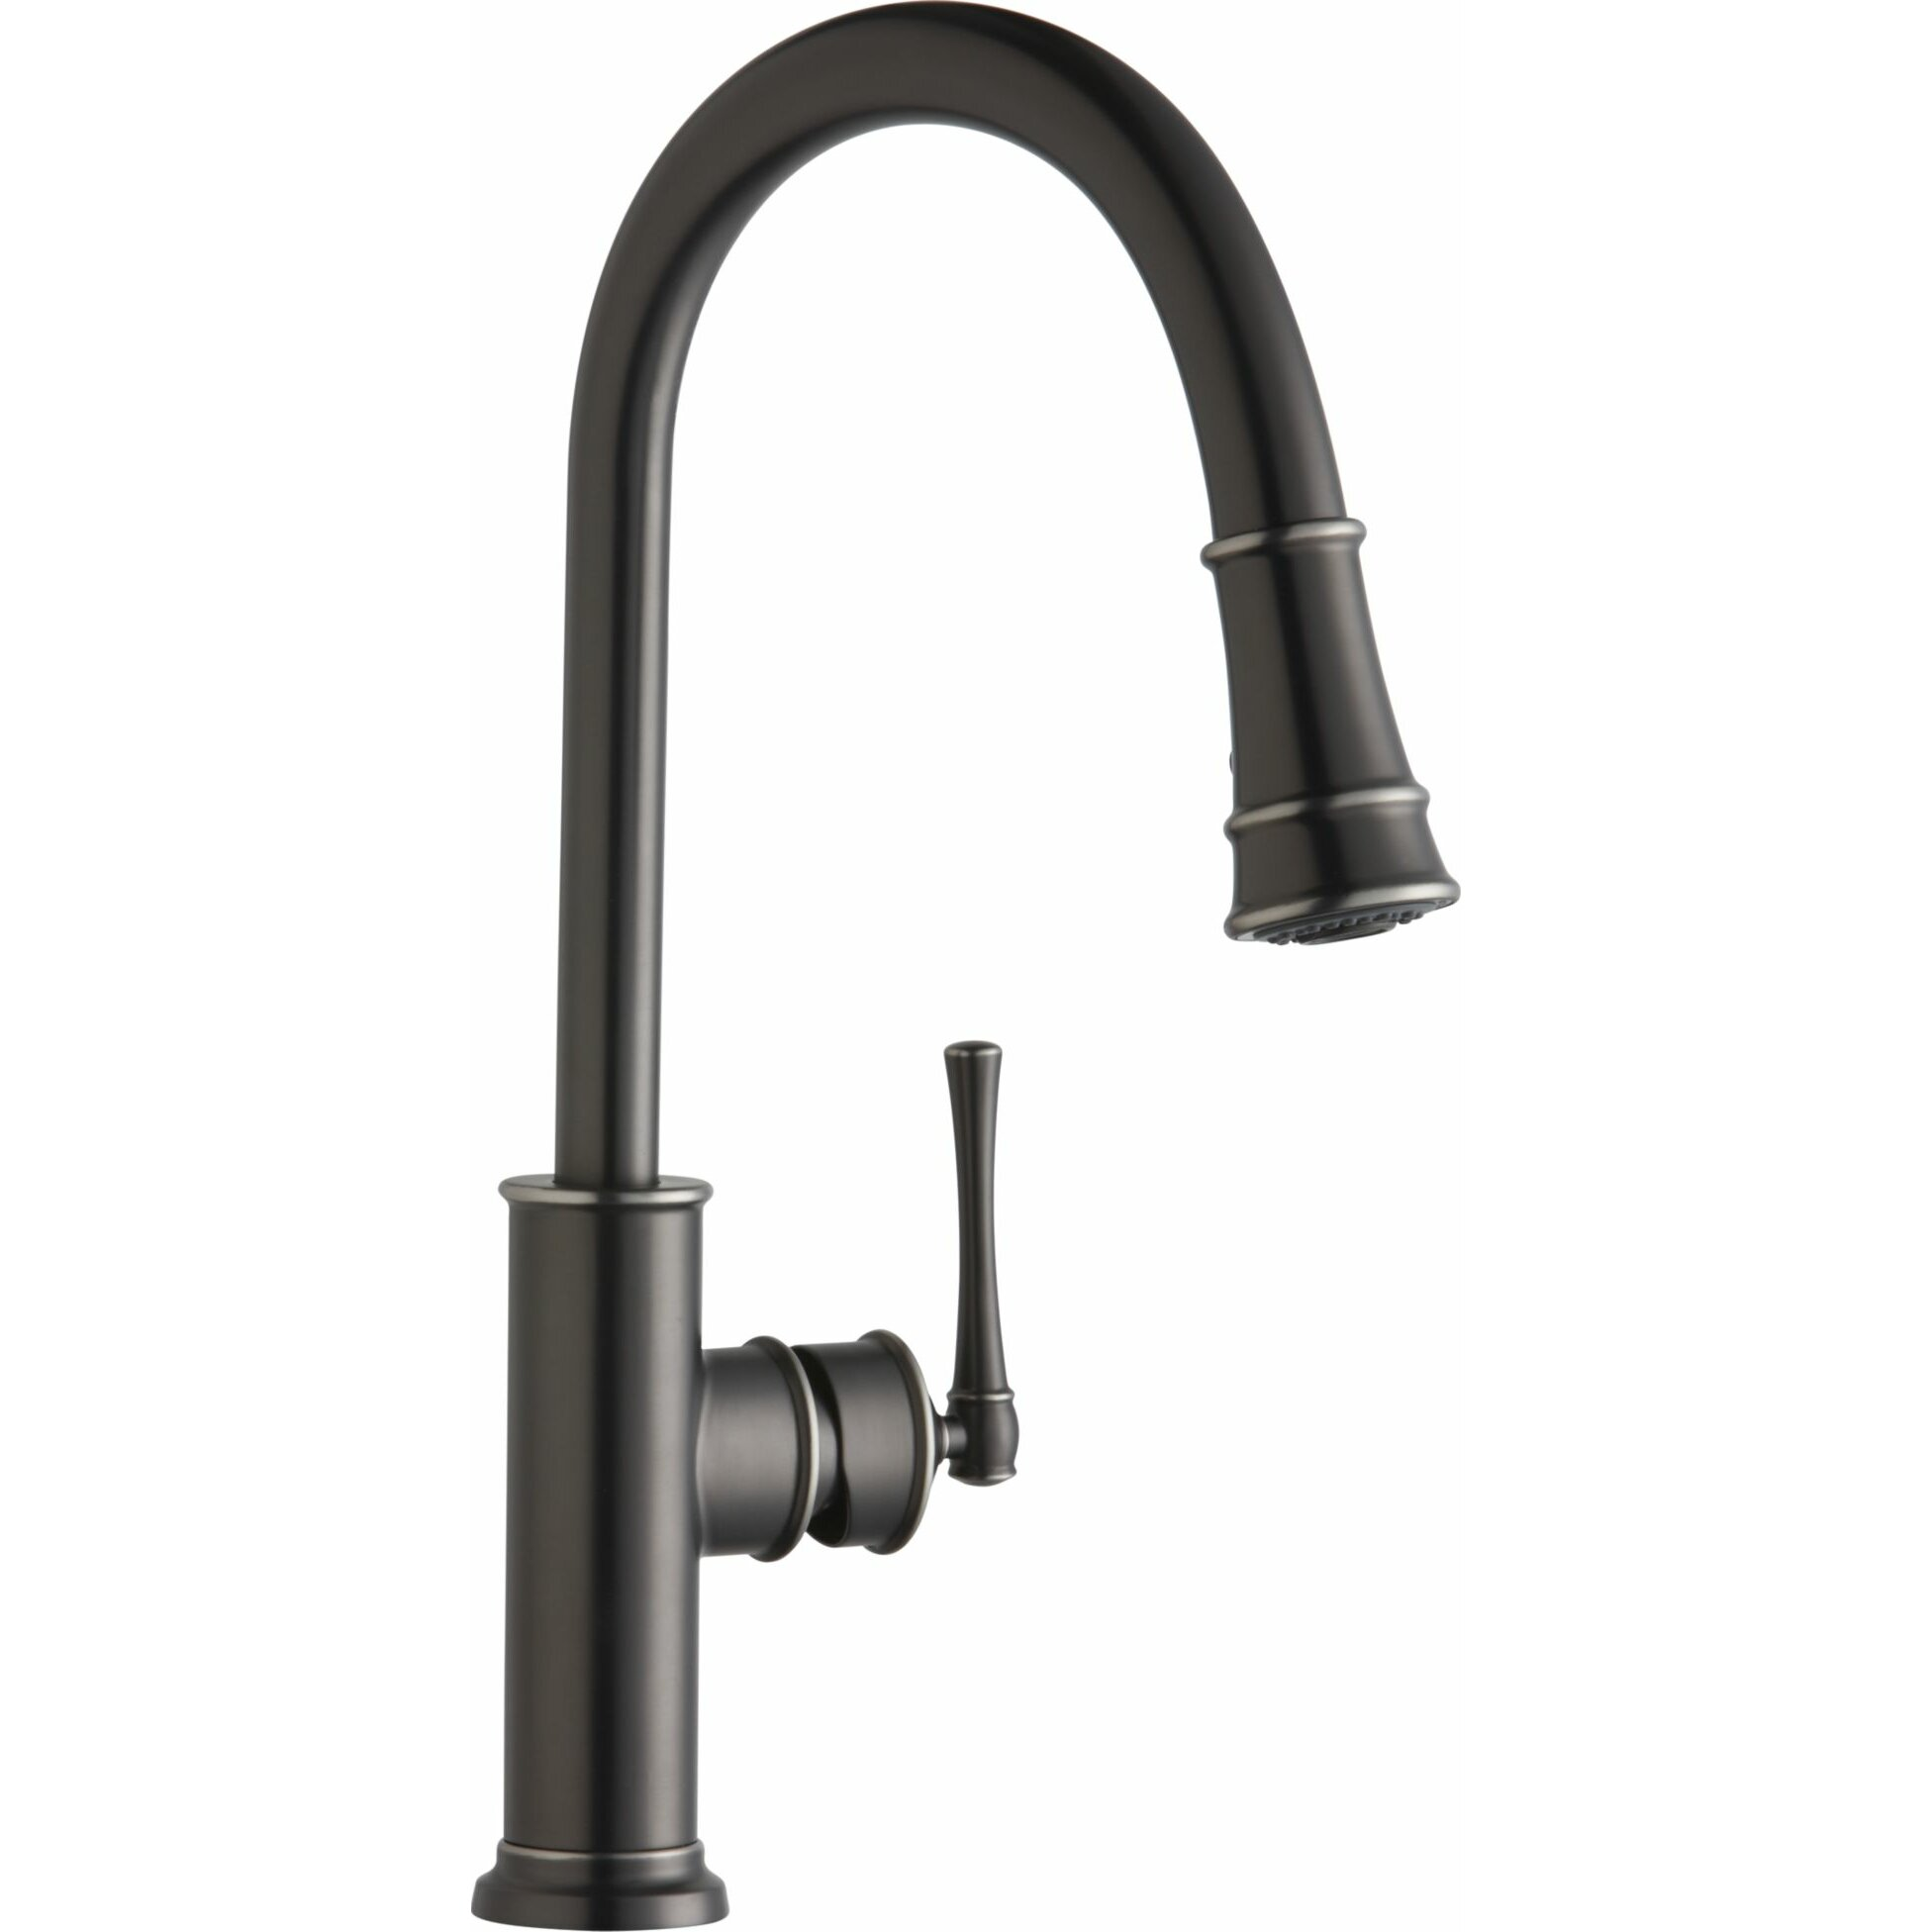 elkay explore single handle deck mount kitchen faucet with elkay avado single handle deck mount kitchen faucet with